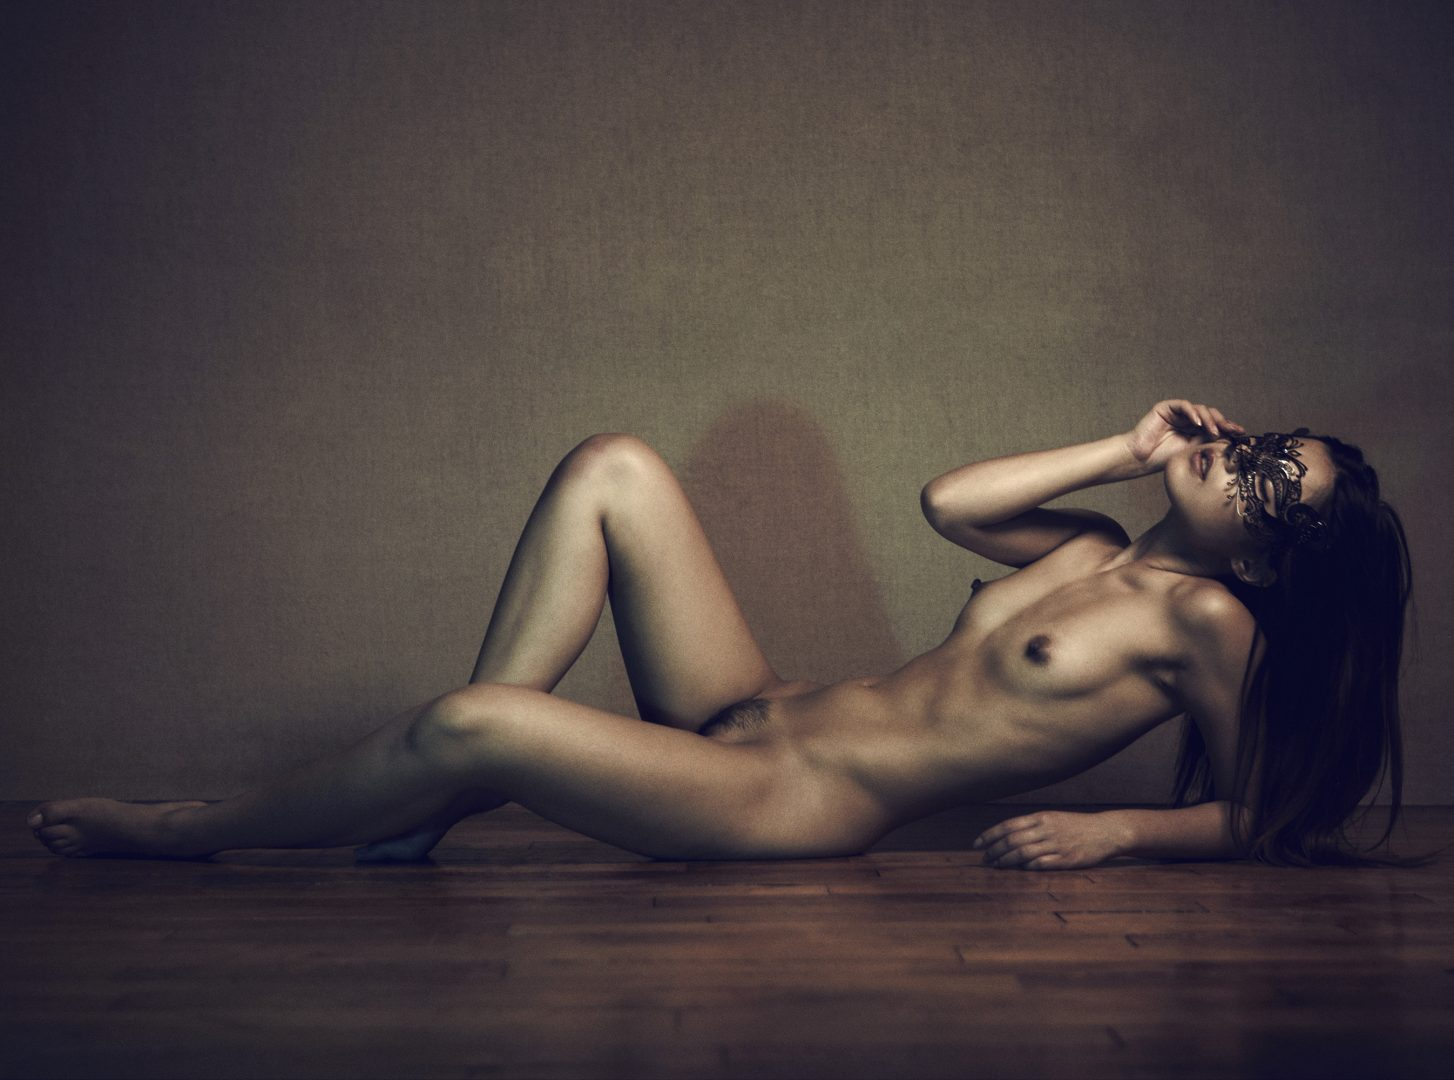 Naked girl with mask lying on floor by Stefan Rappo